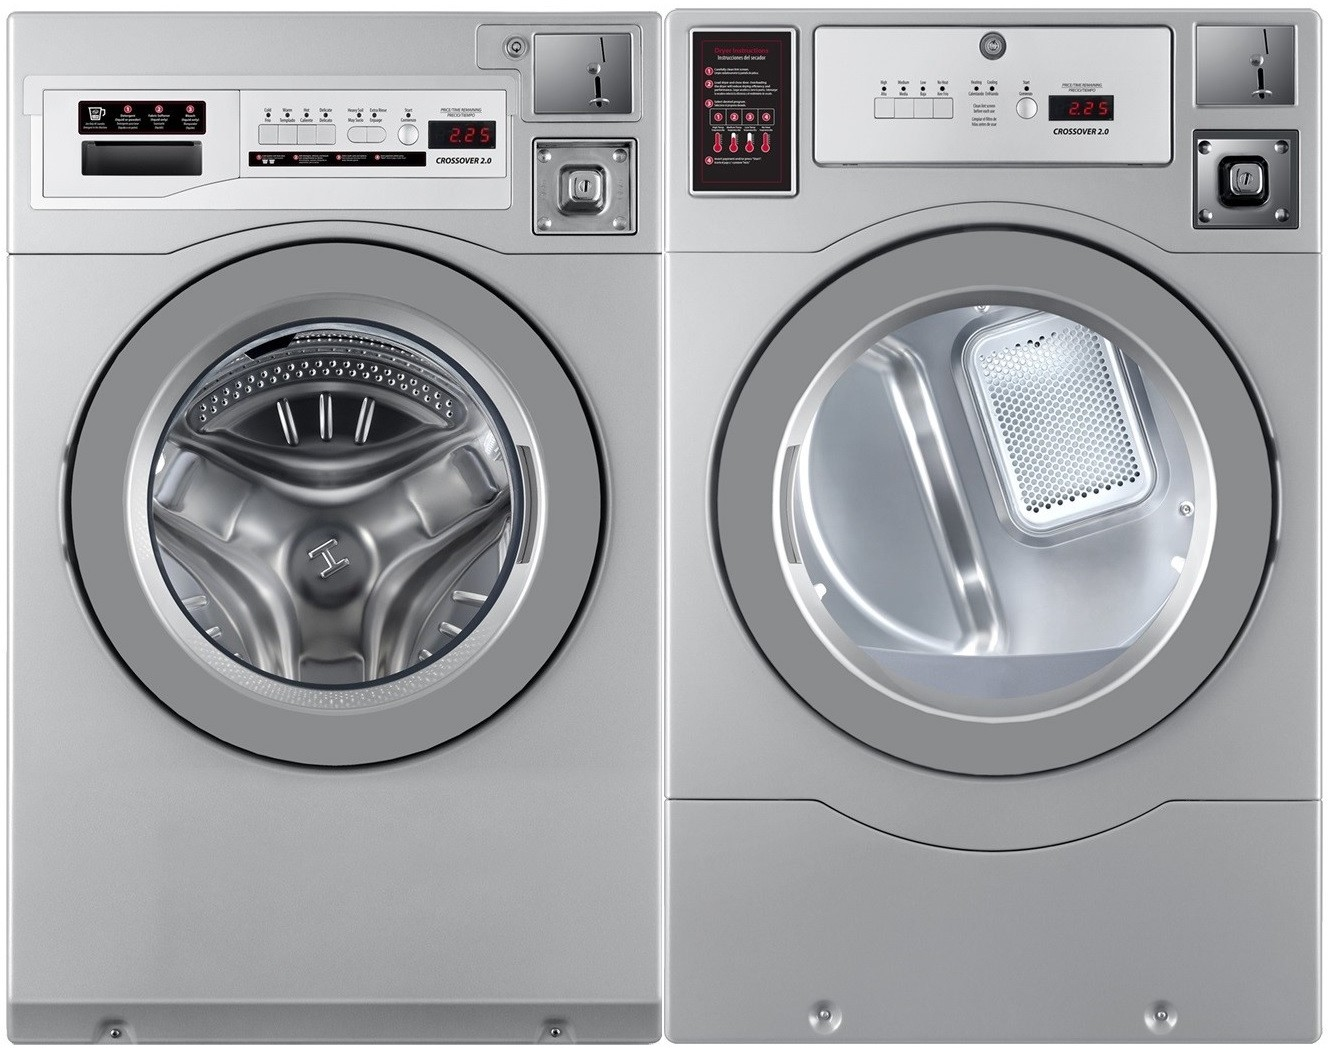 Washer And Dryer Calgary Crossover Crossover 2 Side By Side Washer Dryer Set